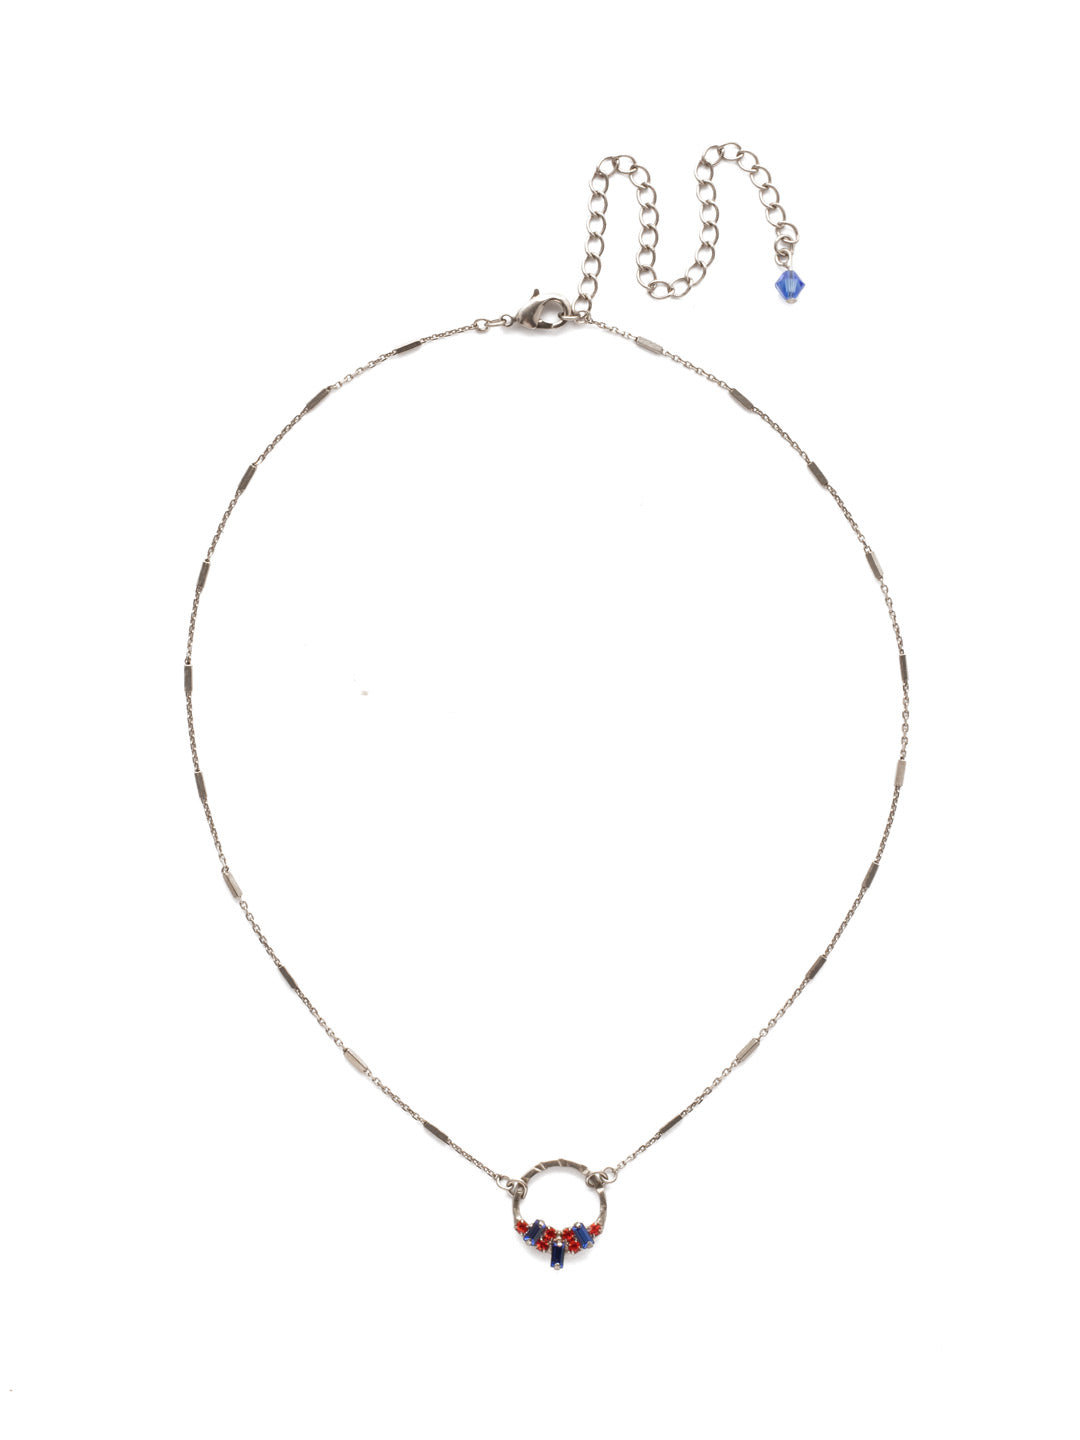 Haute Pendant Necklace - NDL28ASOCR